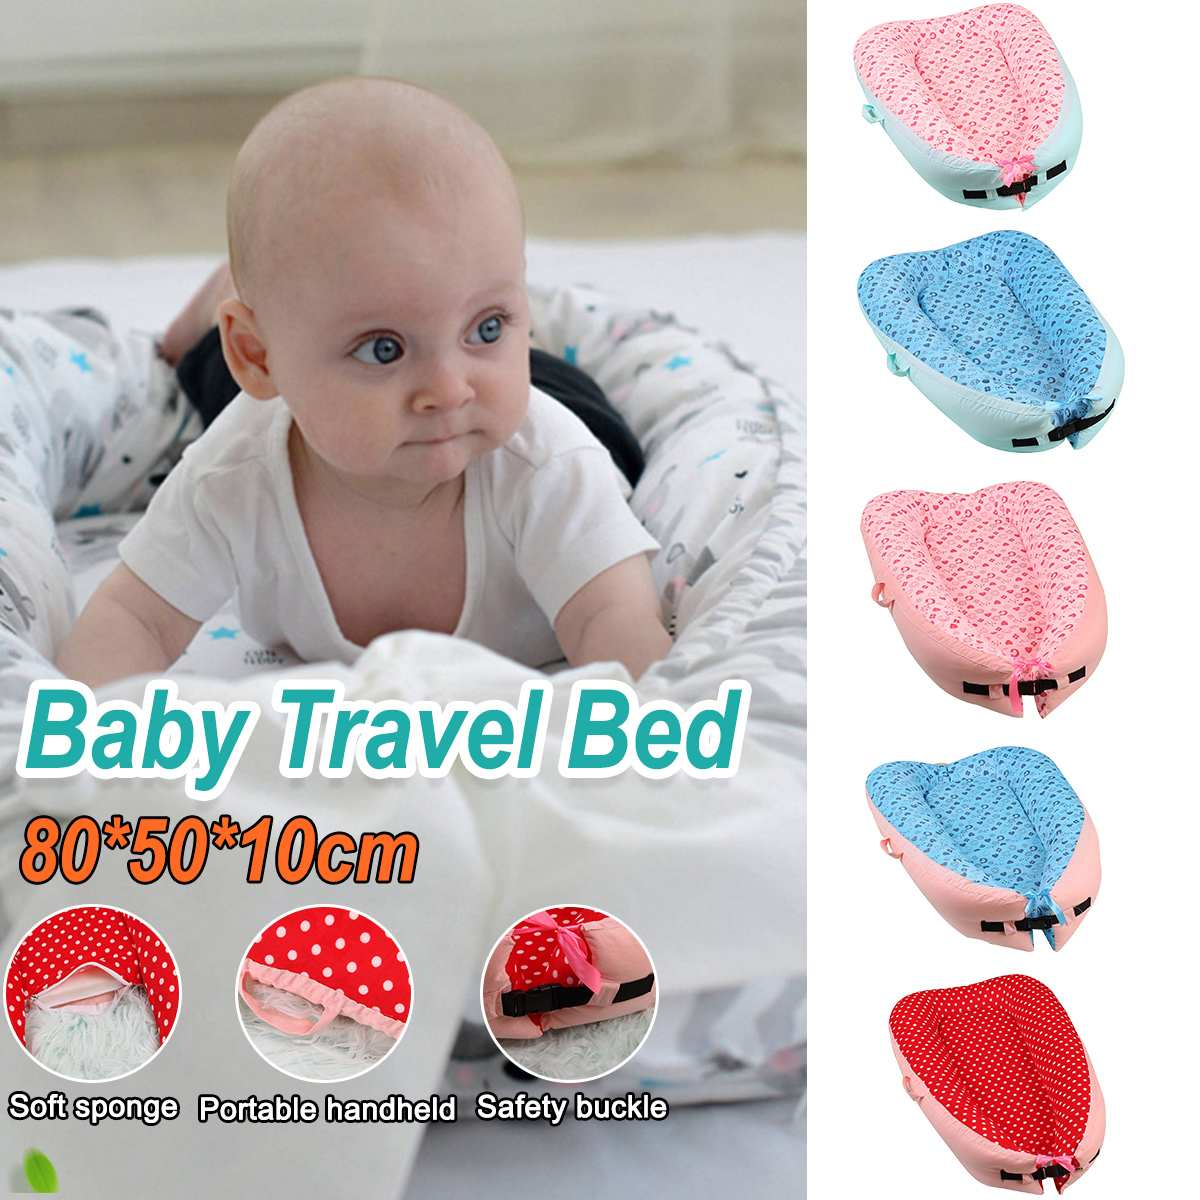 Portable Newborn Baby Nest Bed Crib And Washable Crib Travel Bed For Children Infant Kids Cotton Cradle Travel Bed